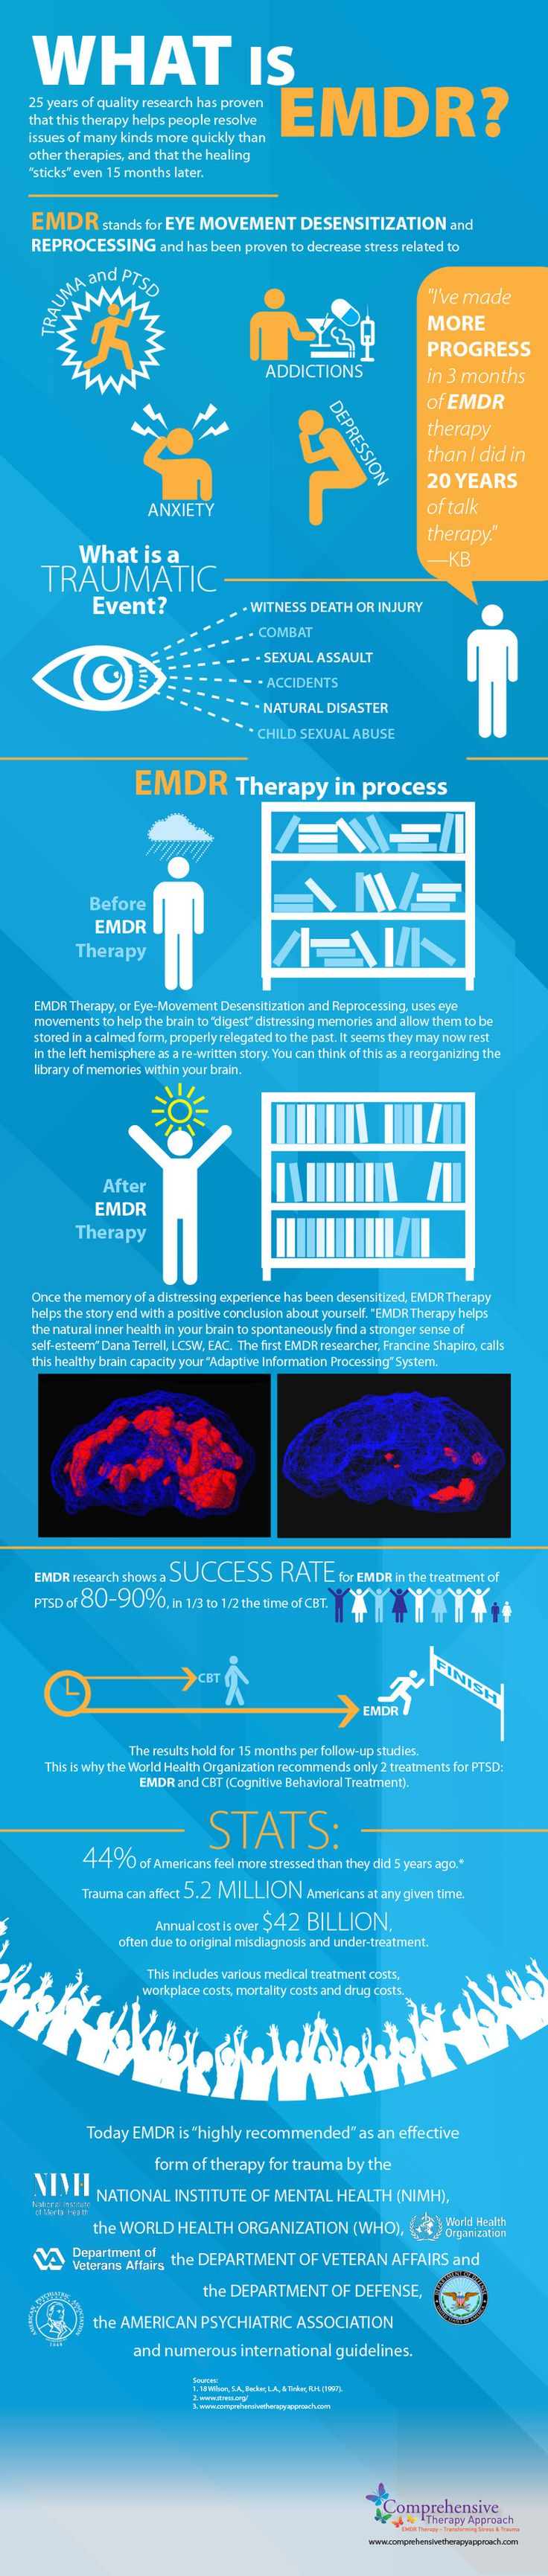 What is EMDR and how can it help?